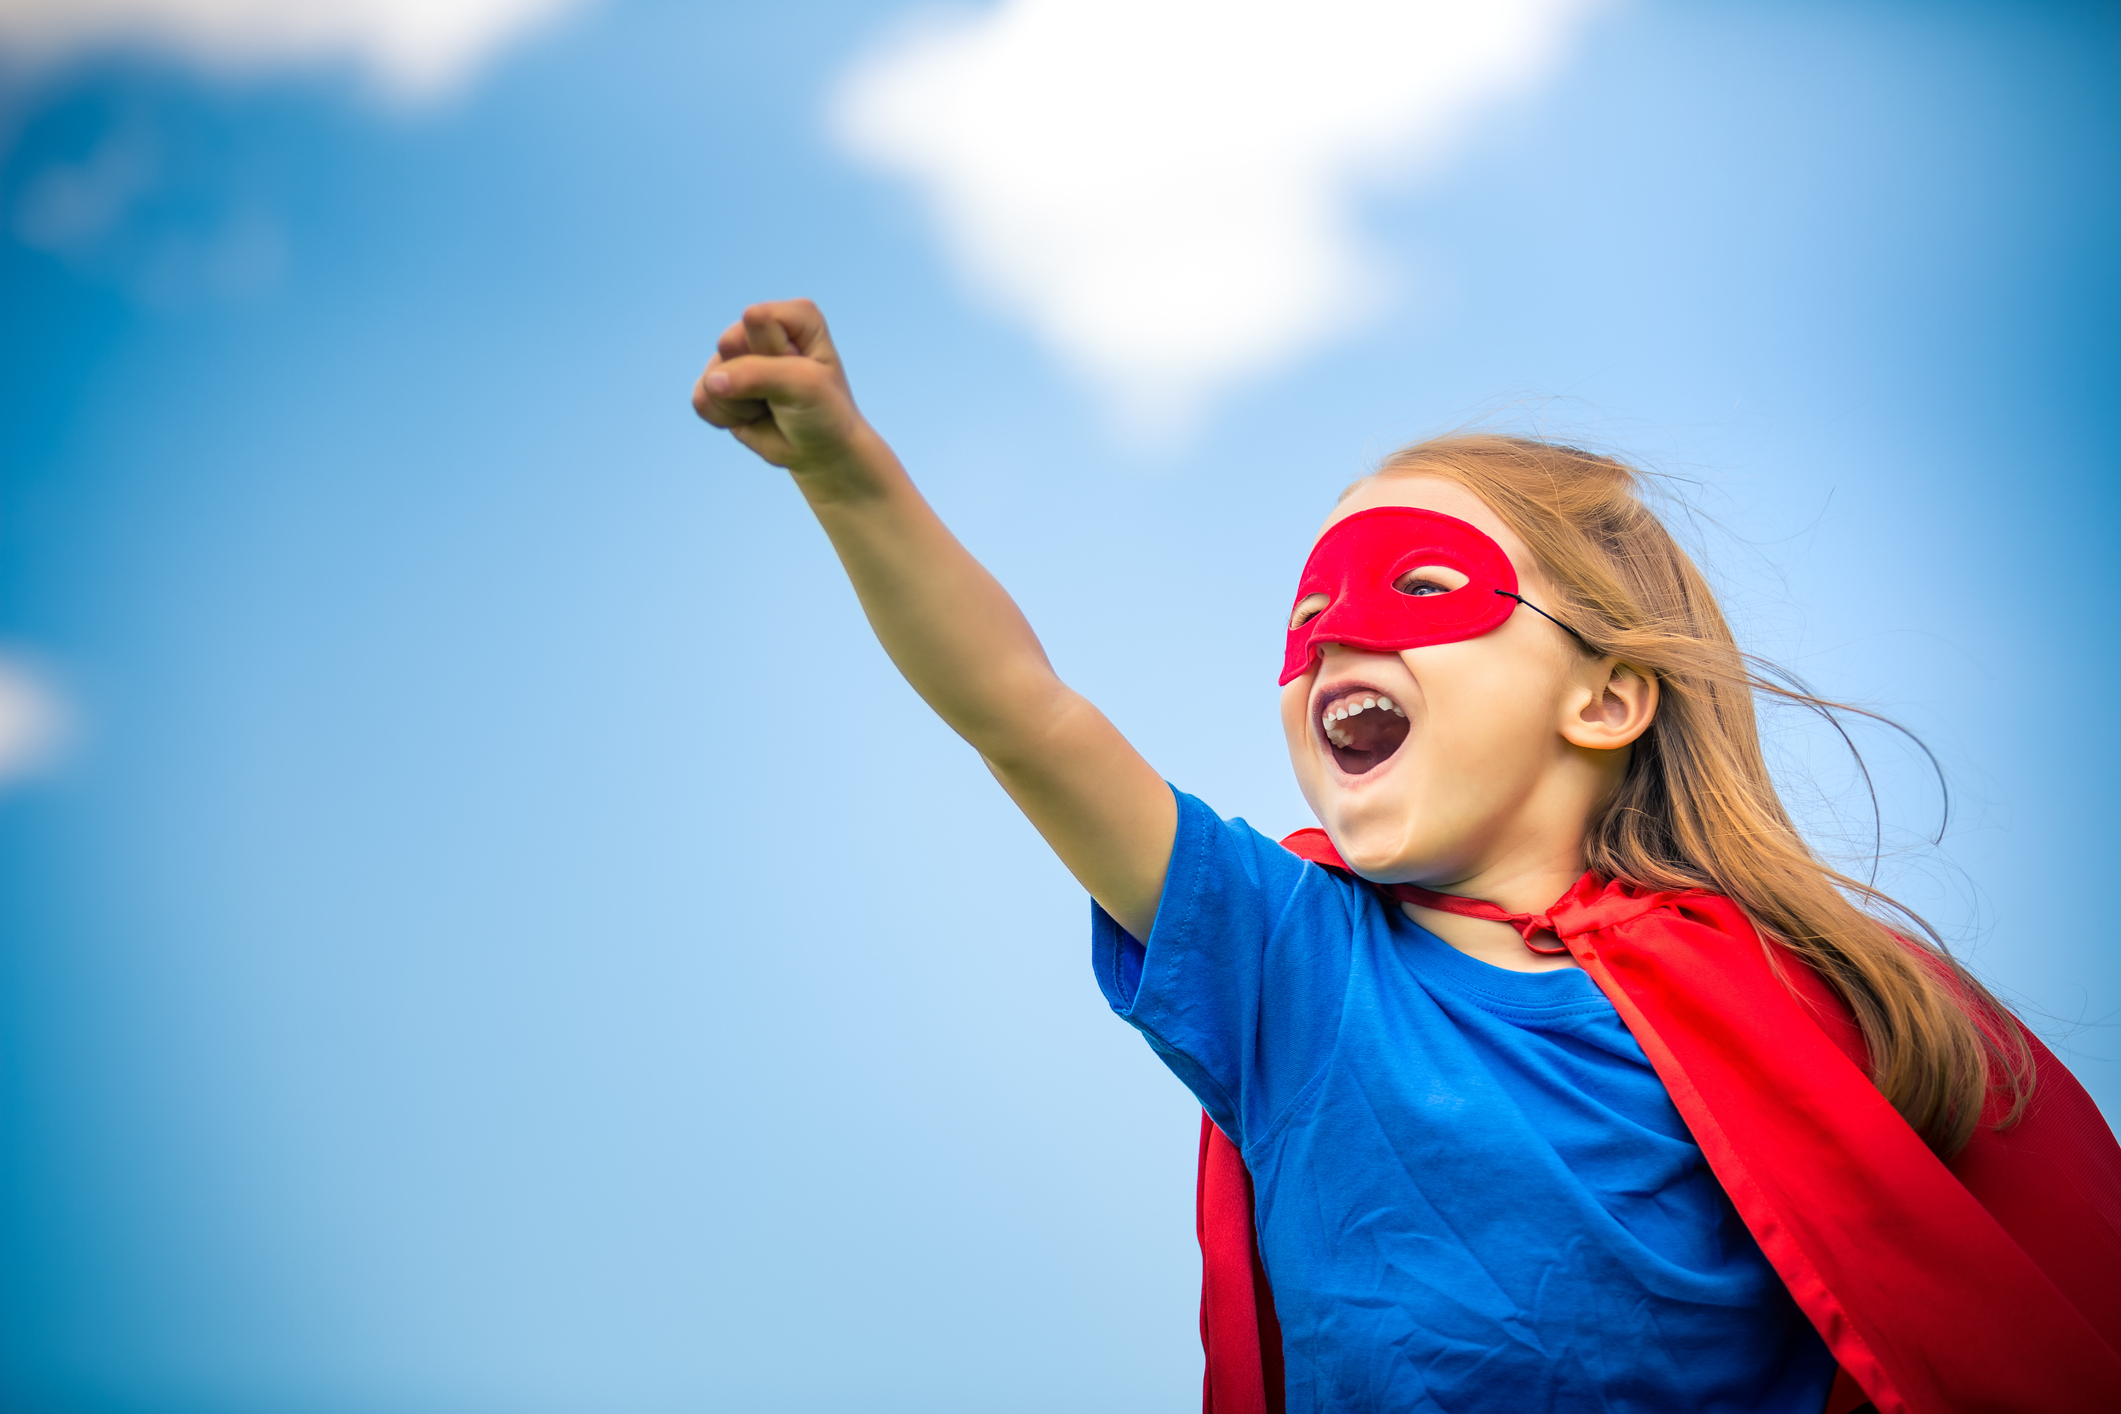 You don't need special powers to work here - - we have our own super heroes !